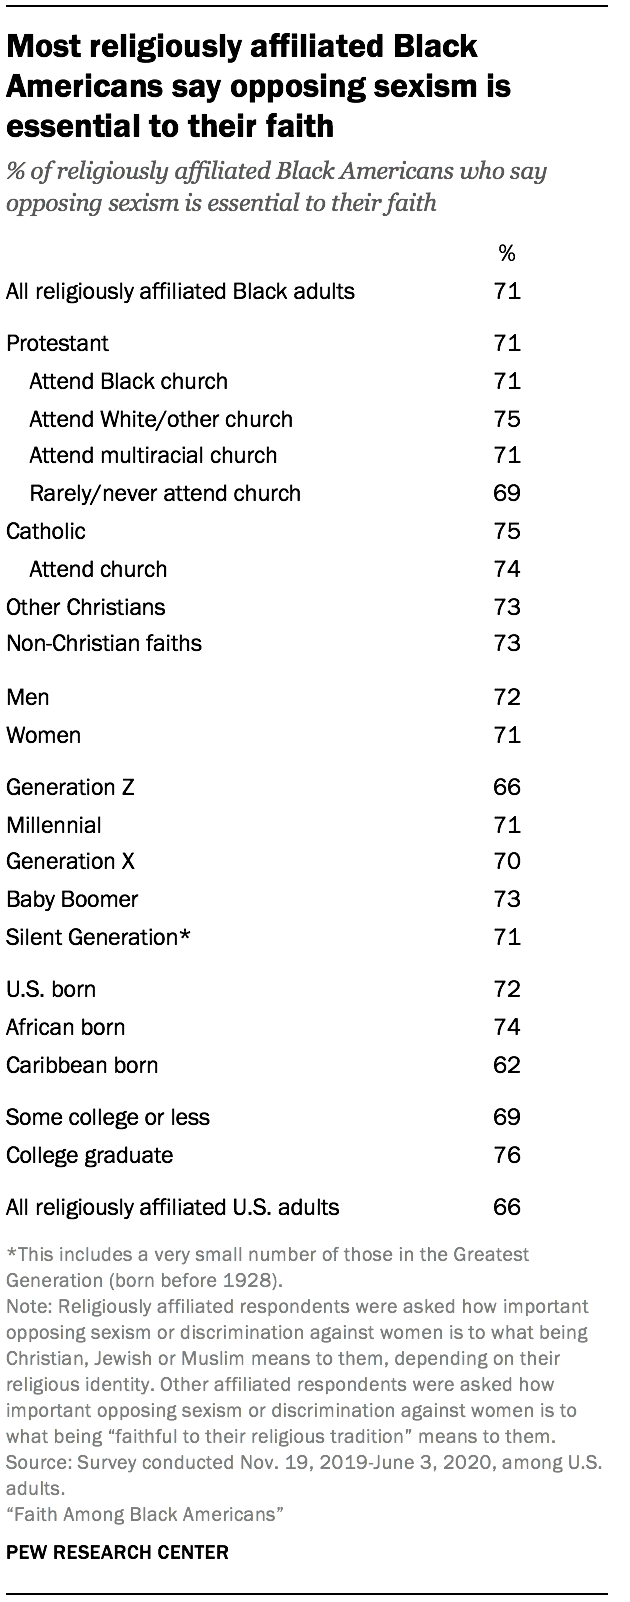 Most religiously affiliated Black Americans say opposing sexism is essential to their faith